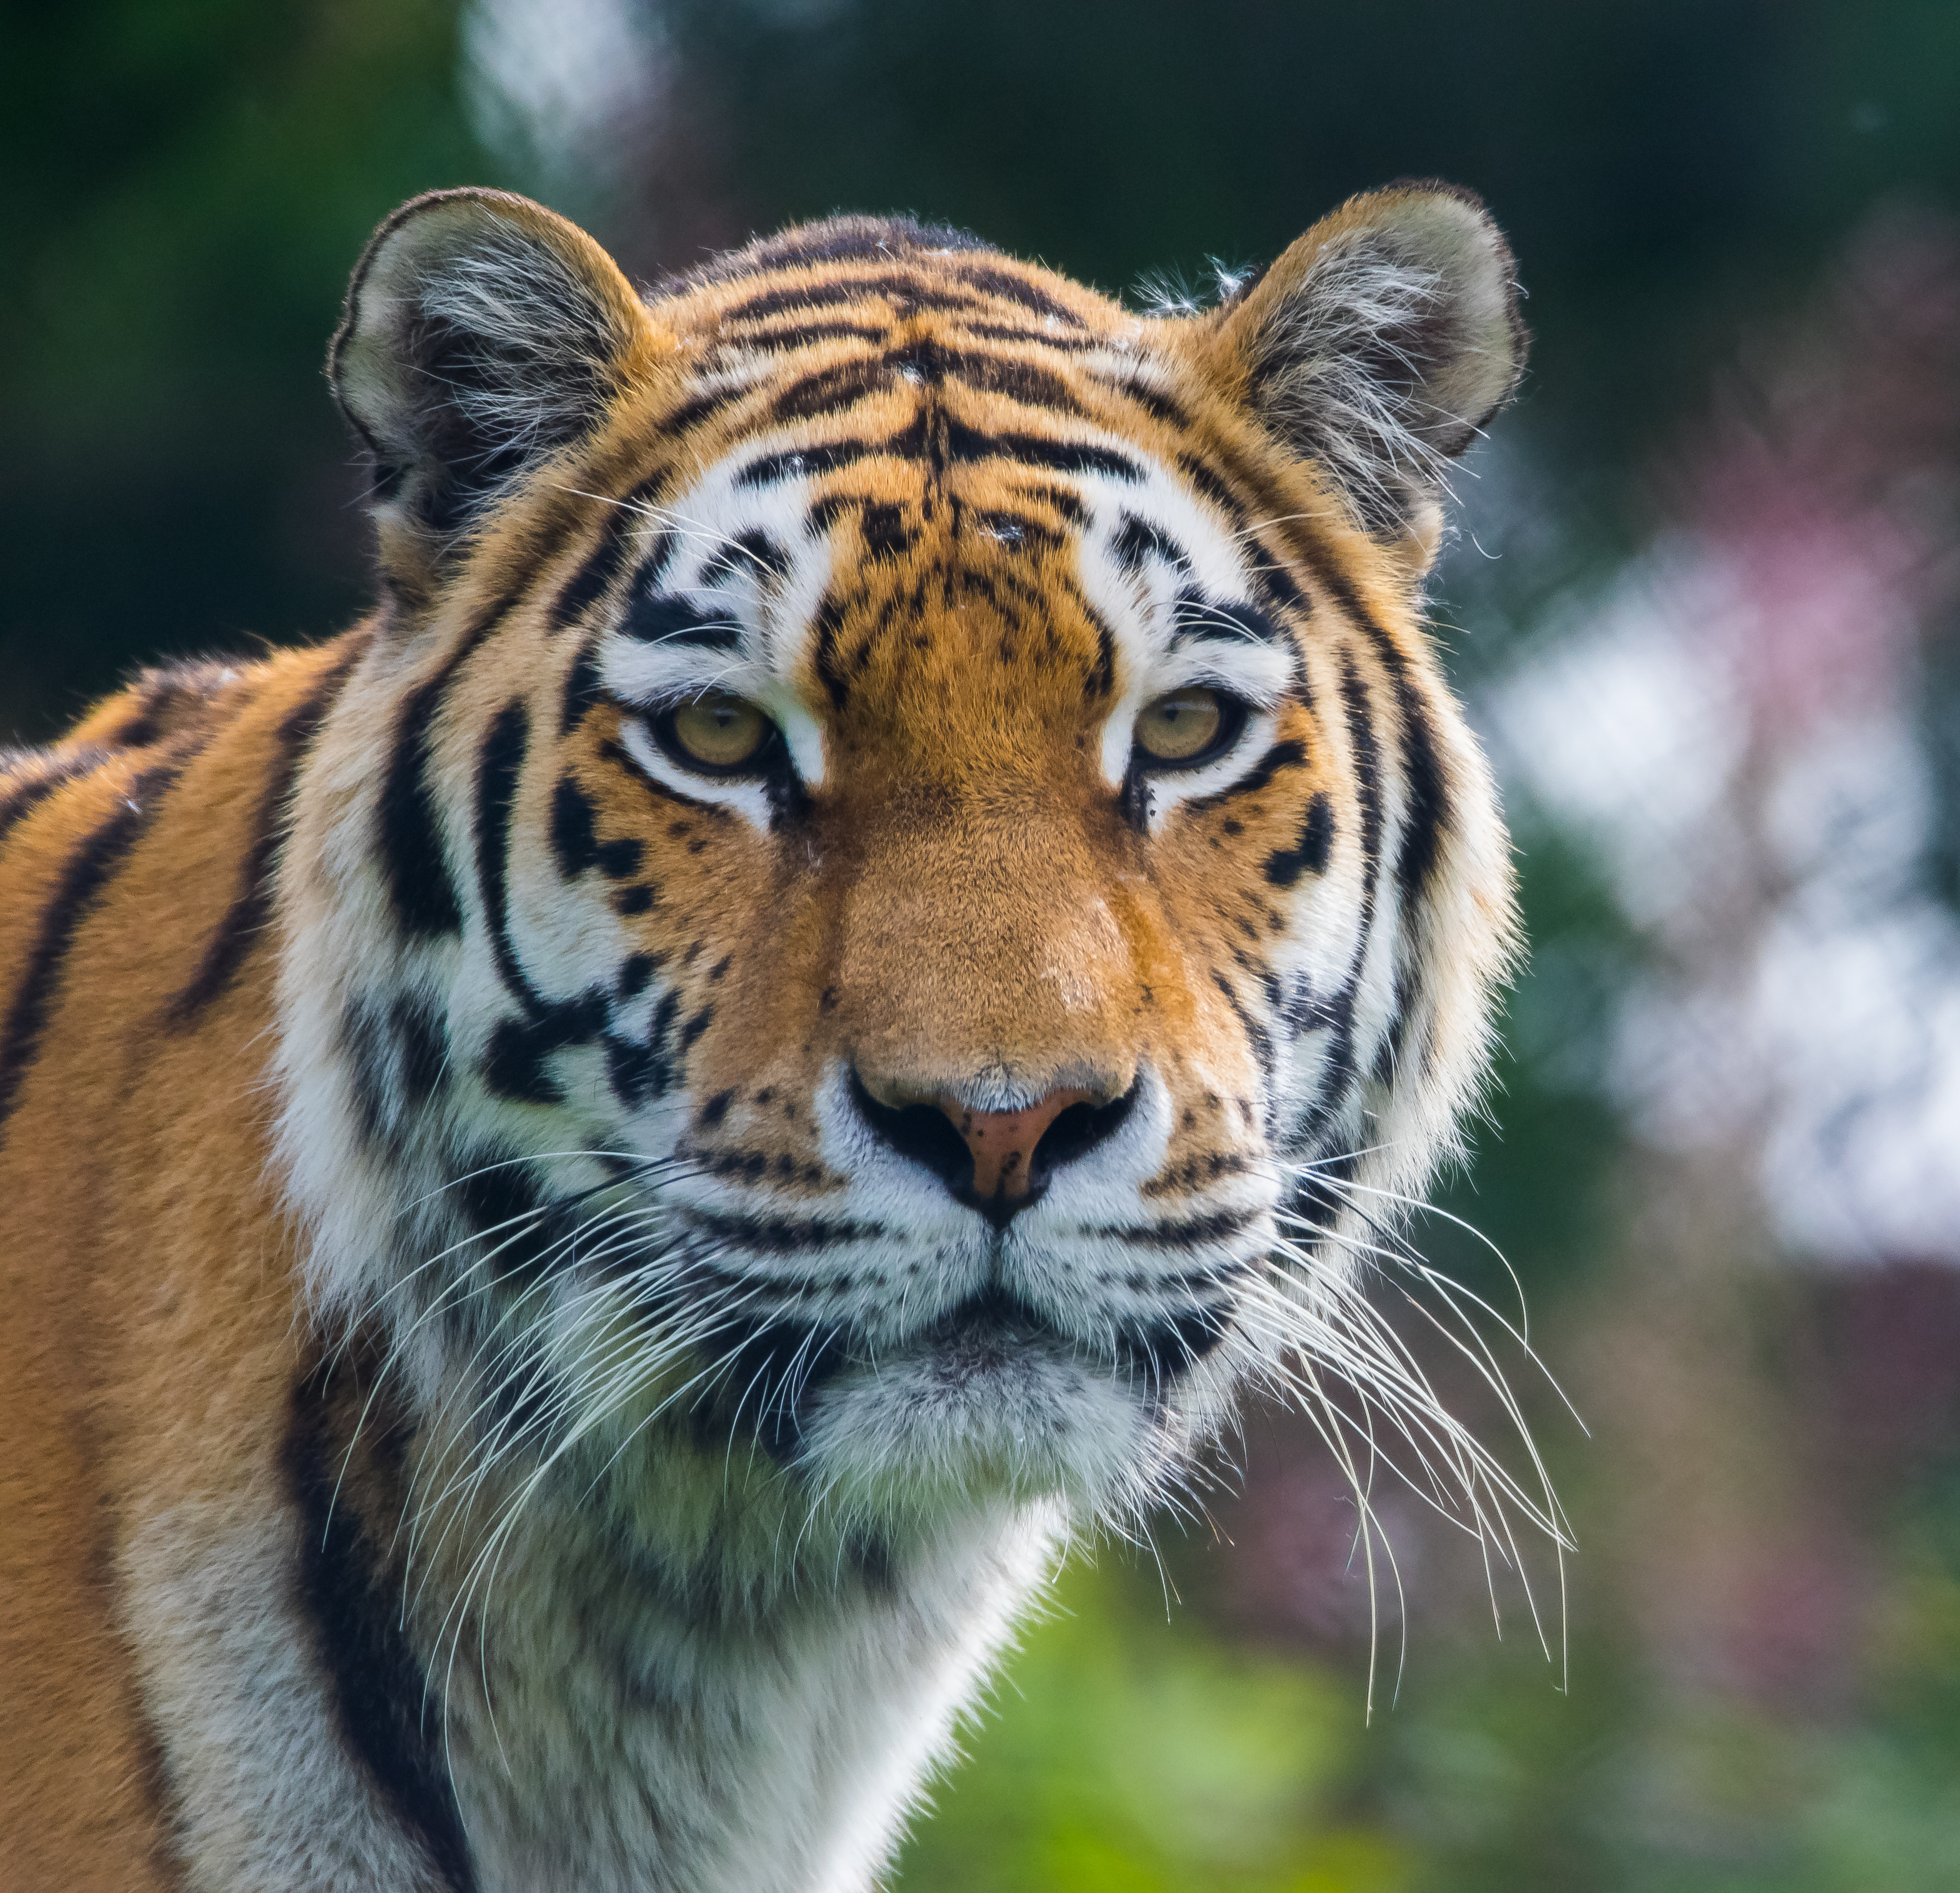 127720 download wallpaper Animals, Tiger, Predator, Big Cat, Animal screensavers and pictures for free